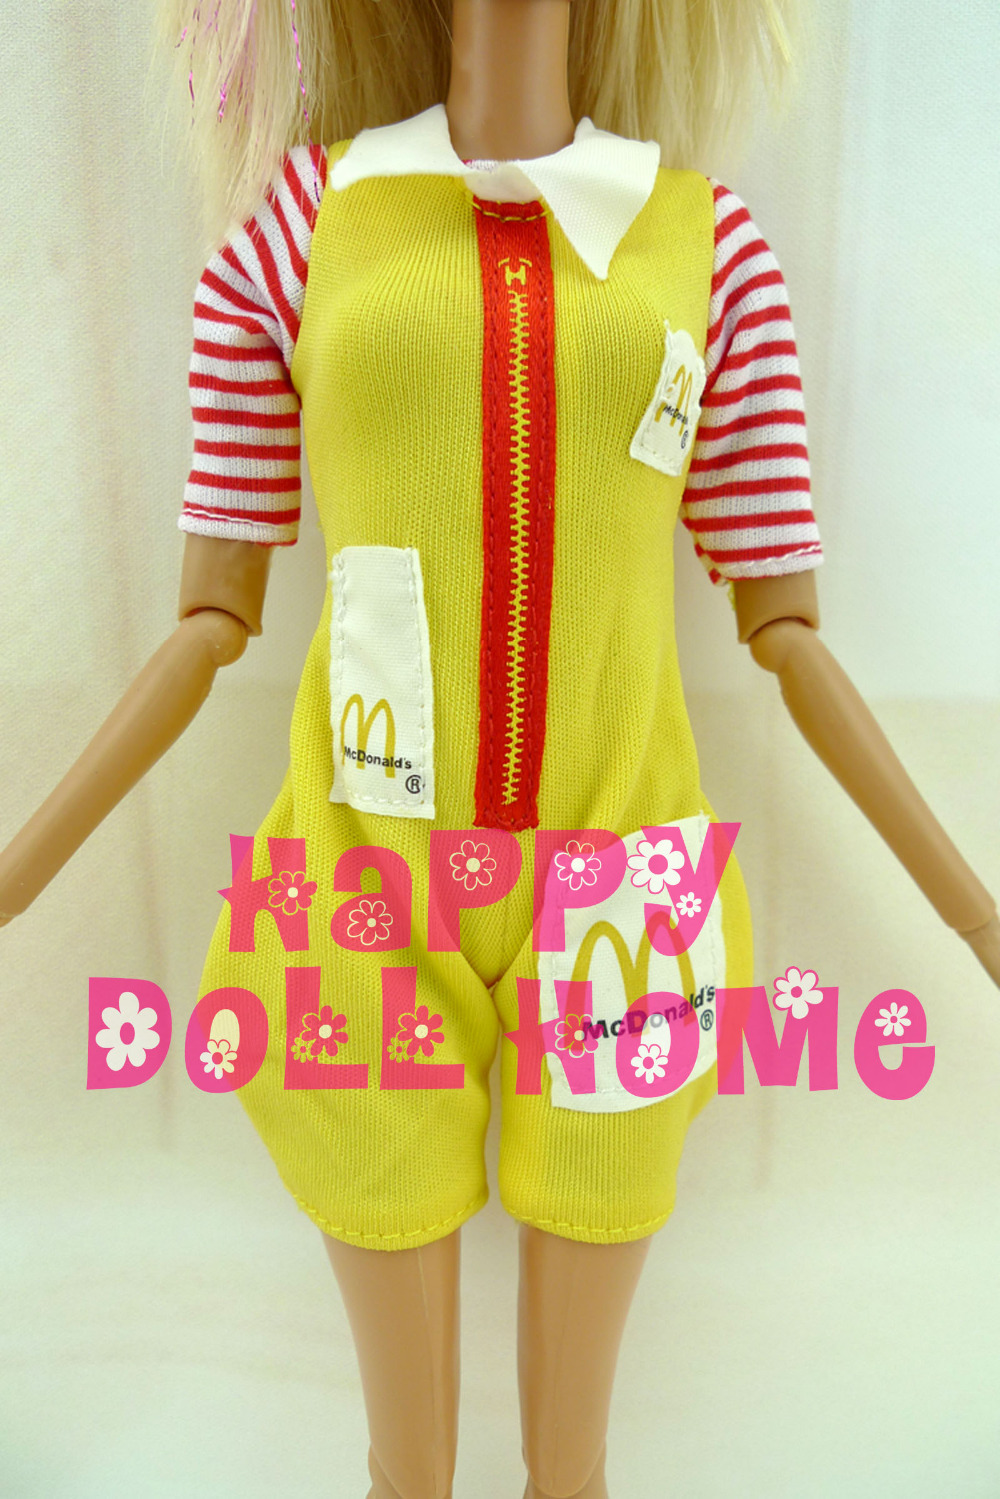 Restricted Cute Feminine Jumpsuit Mcdonald Uniform Yellow Outfit Waitress Garments For Barbie Doll 12″ Faux Play Children Favor Toy